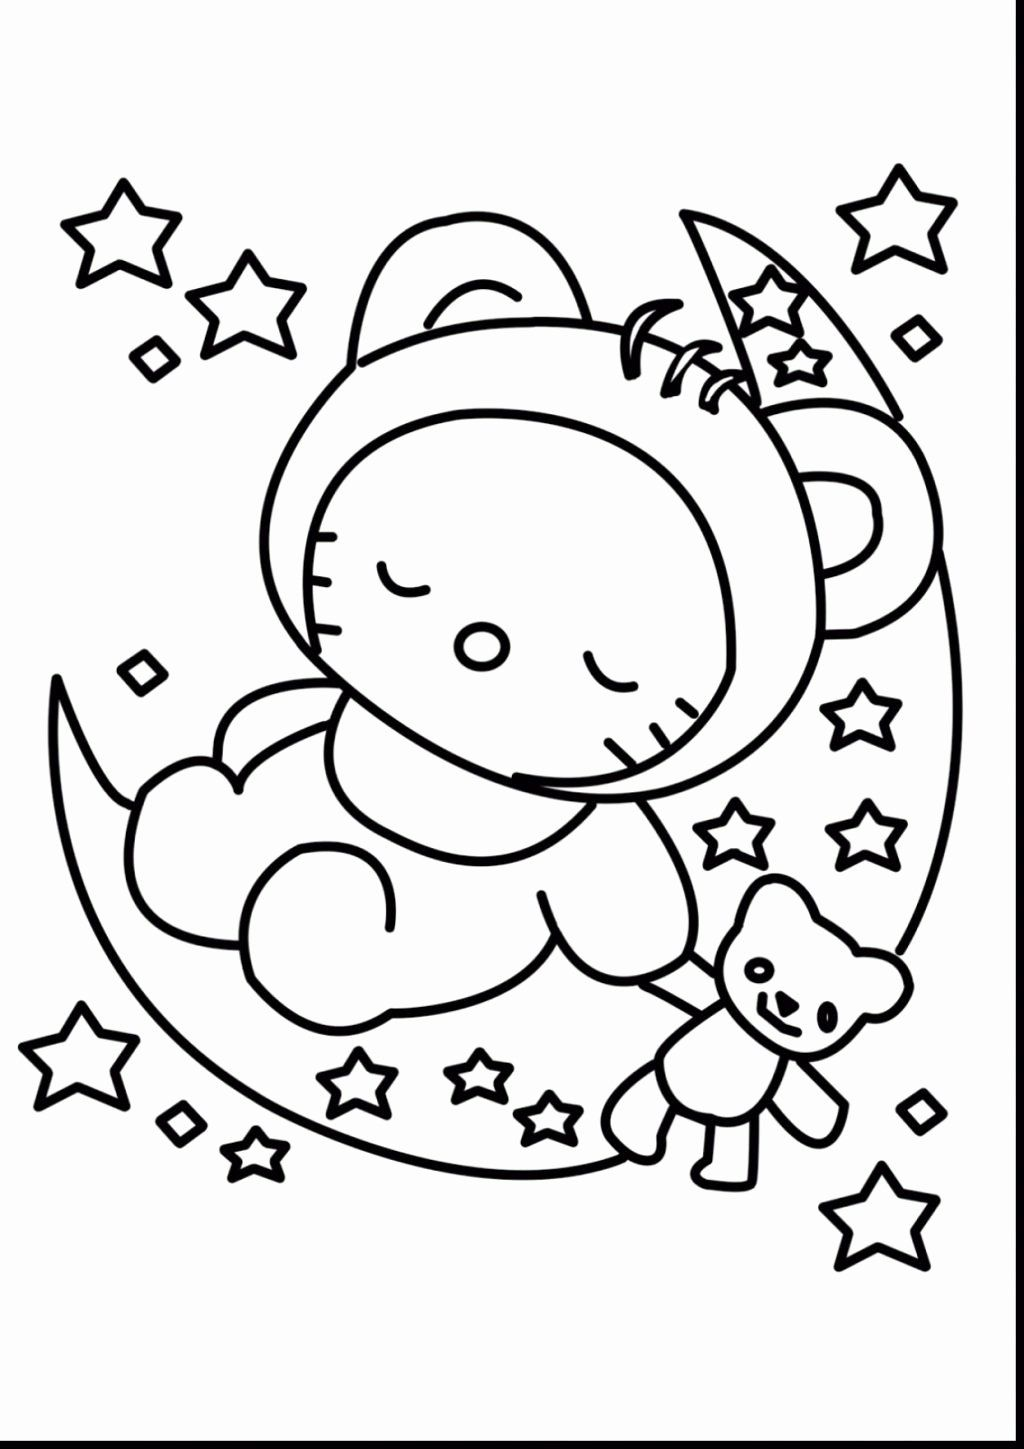 Transportation Coloring Pages Pdf | Dibujos, Hello kitty ...